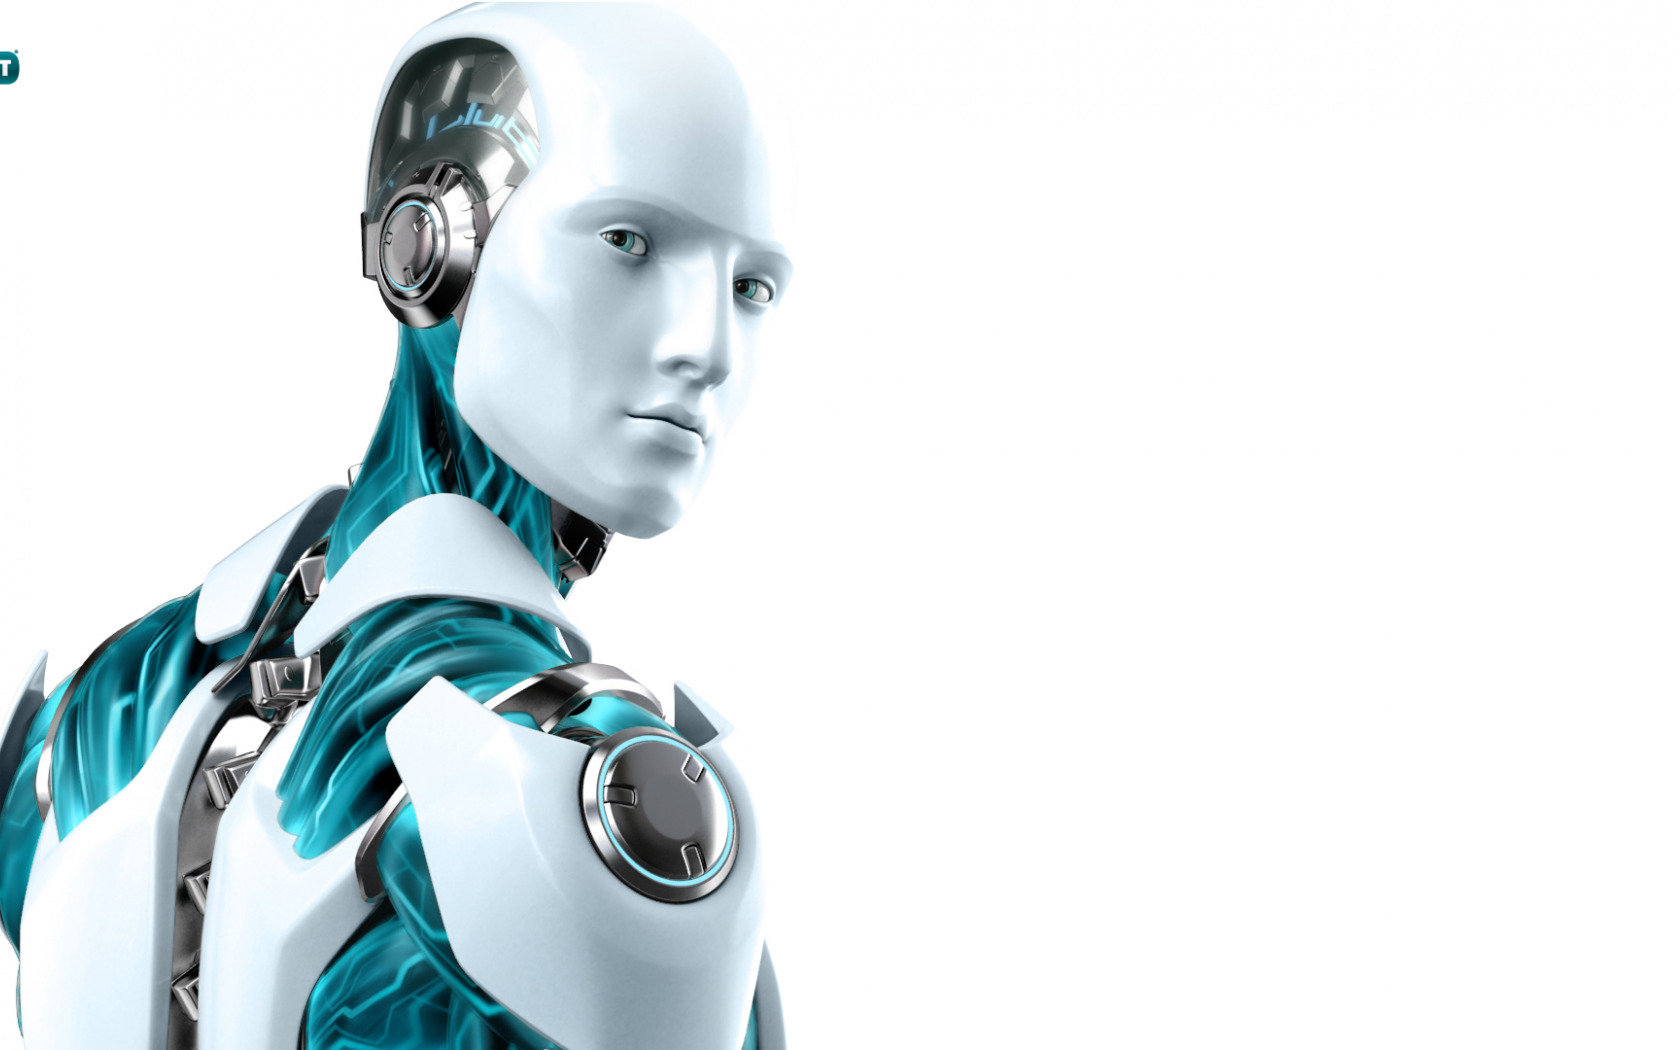 advancement in technology can someday bring artificial intelligence to reality